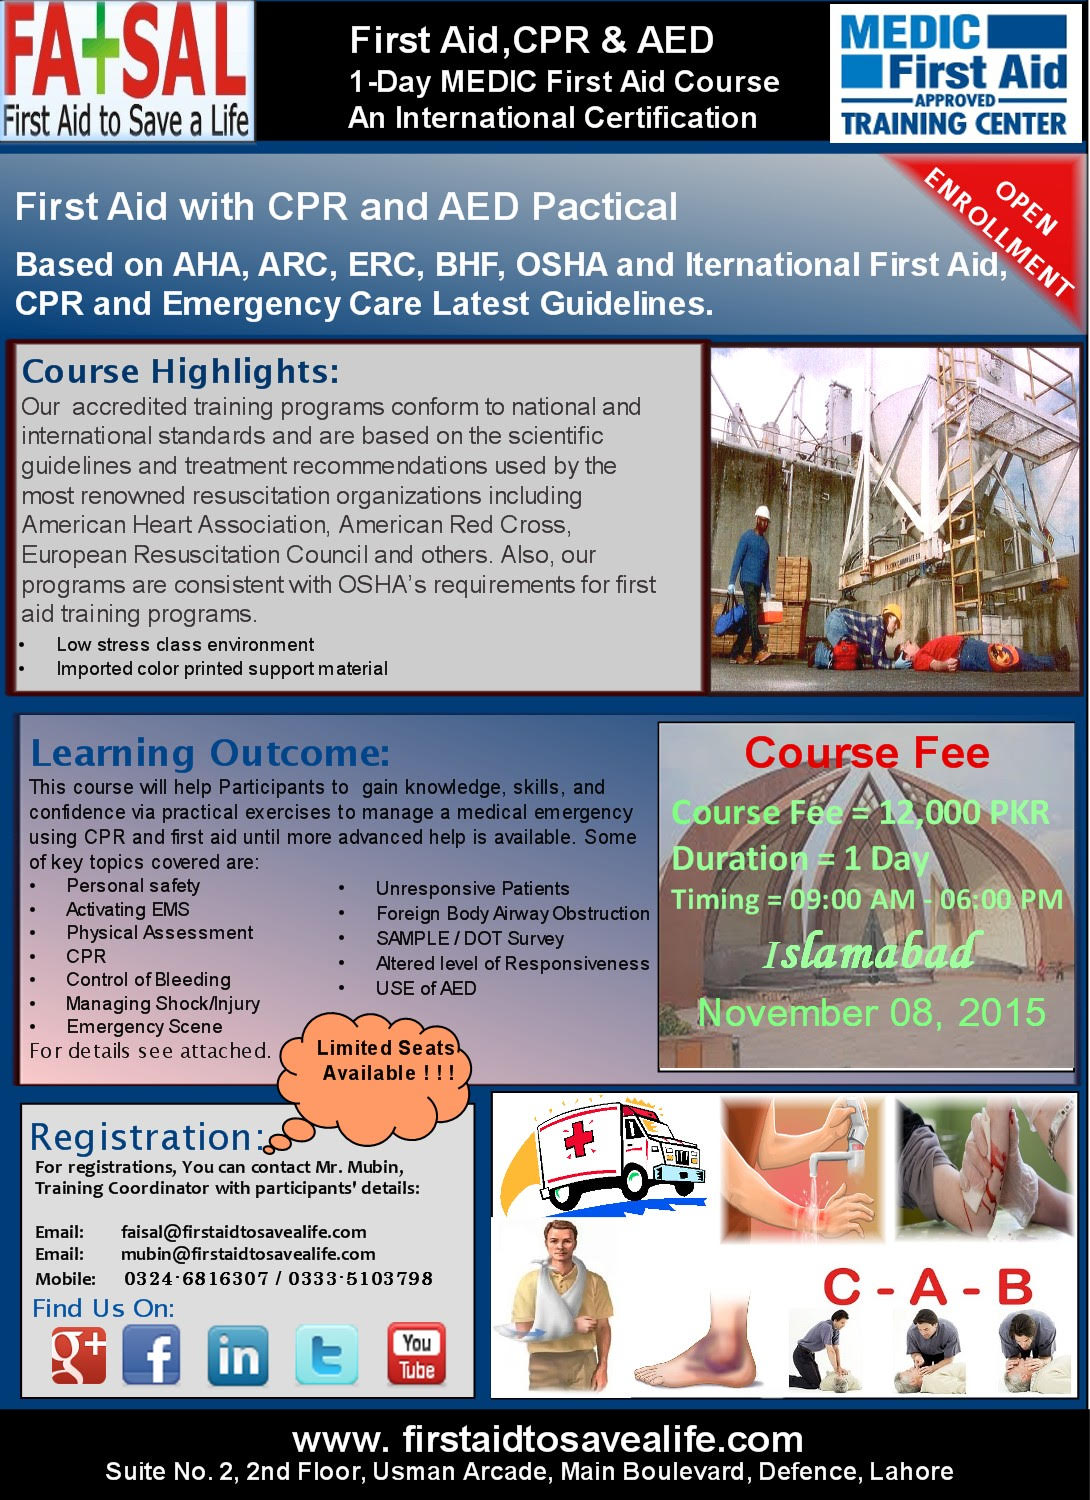 First Aid Cpr Aed International Certification Course Your